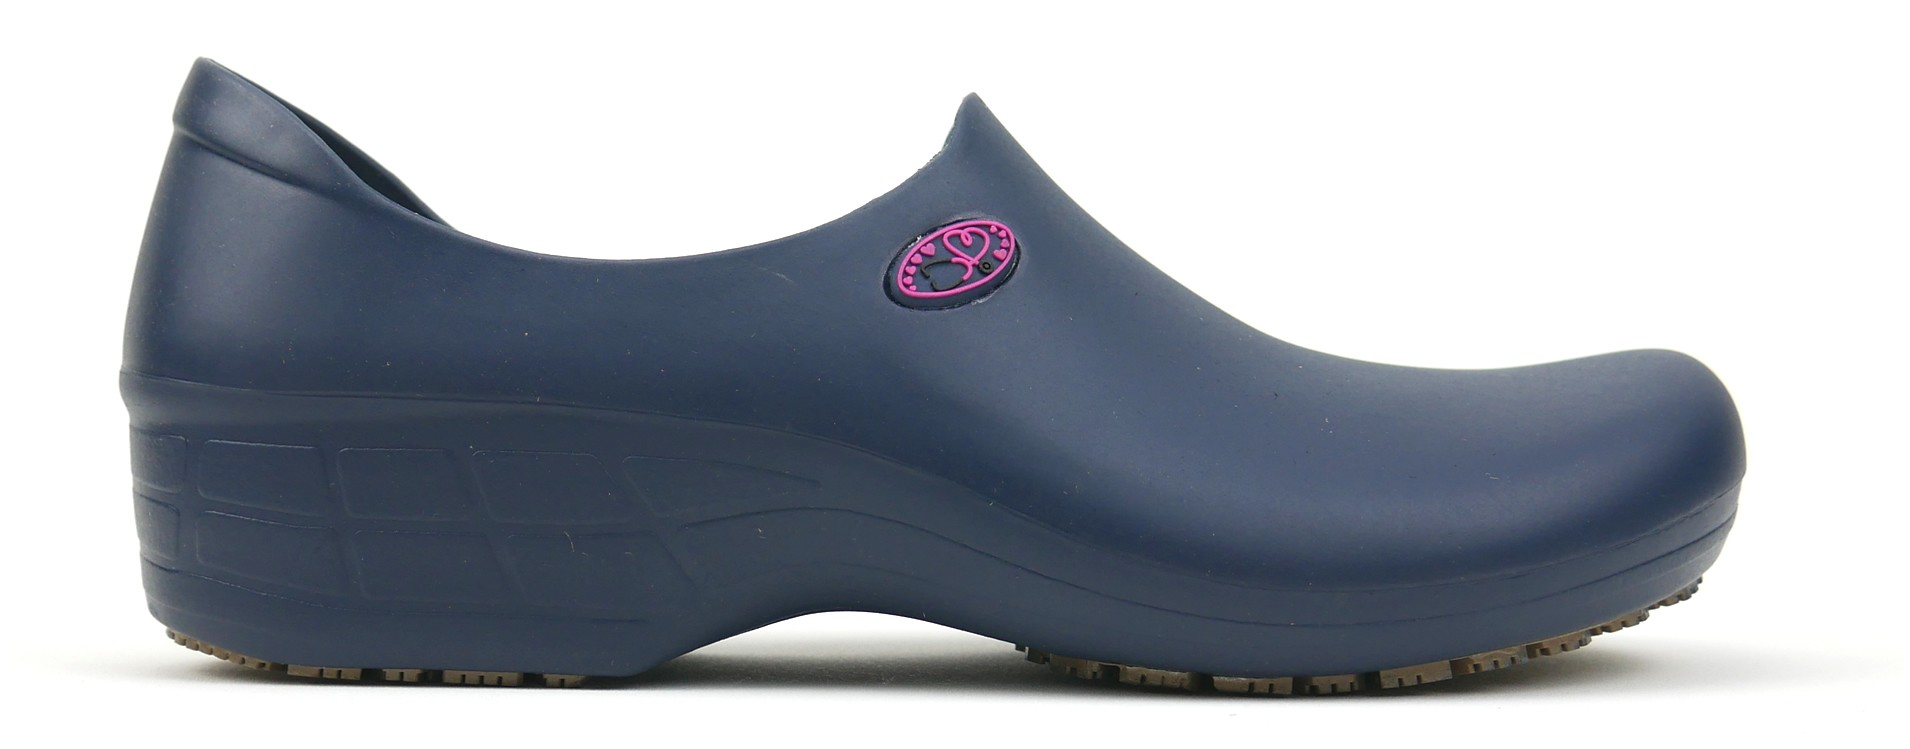 Non-Slip STICKY Shoes Stetho Love - Blue/Pink